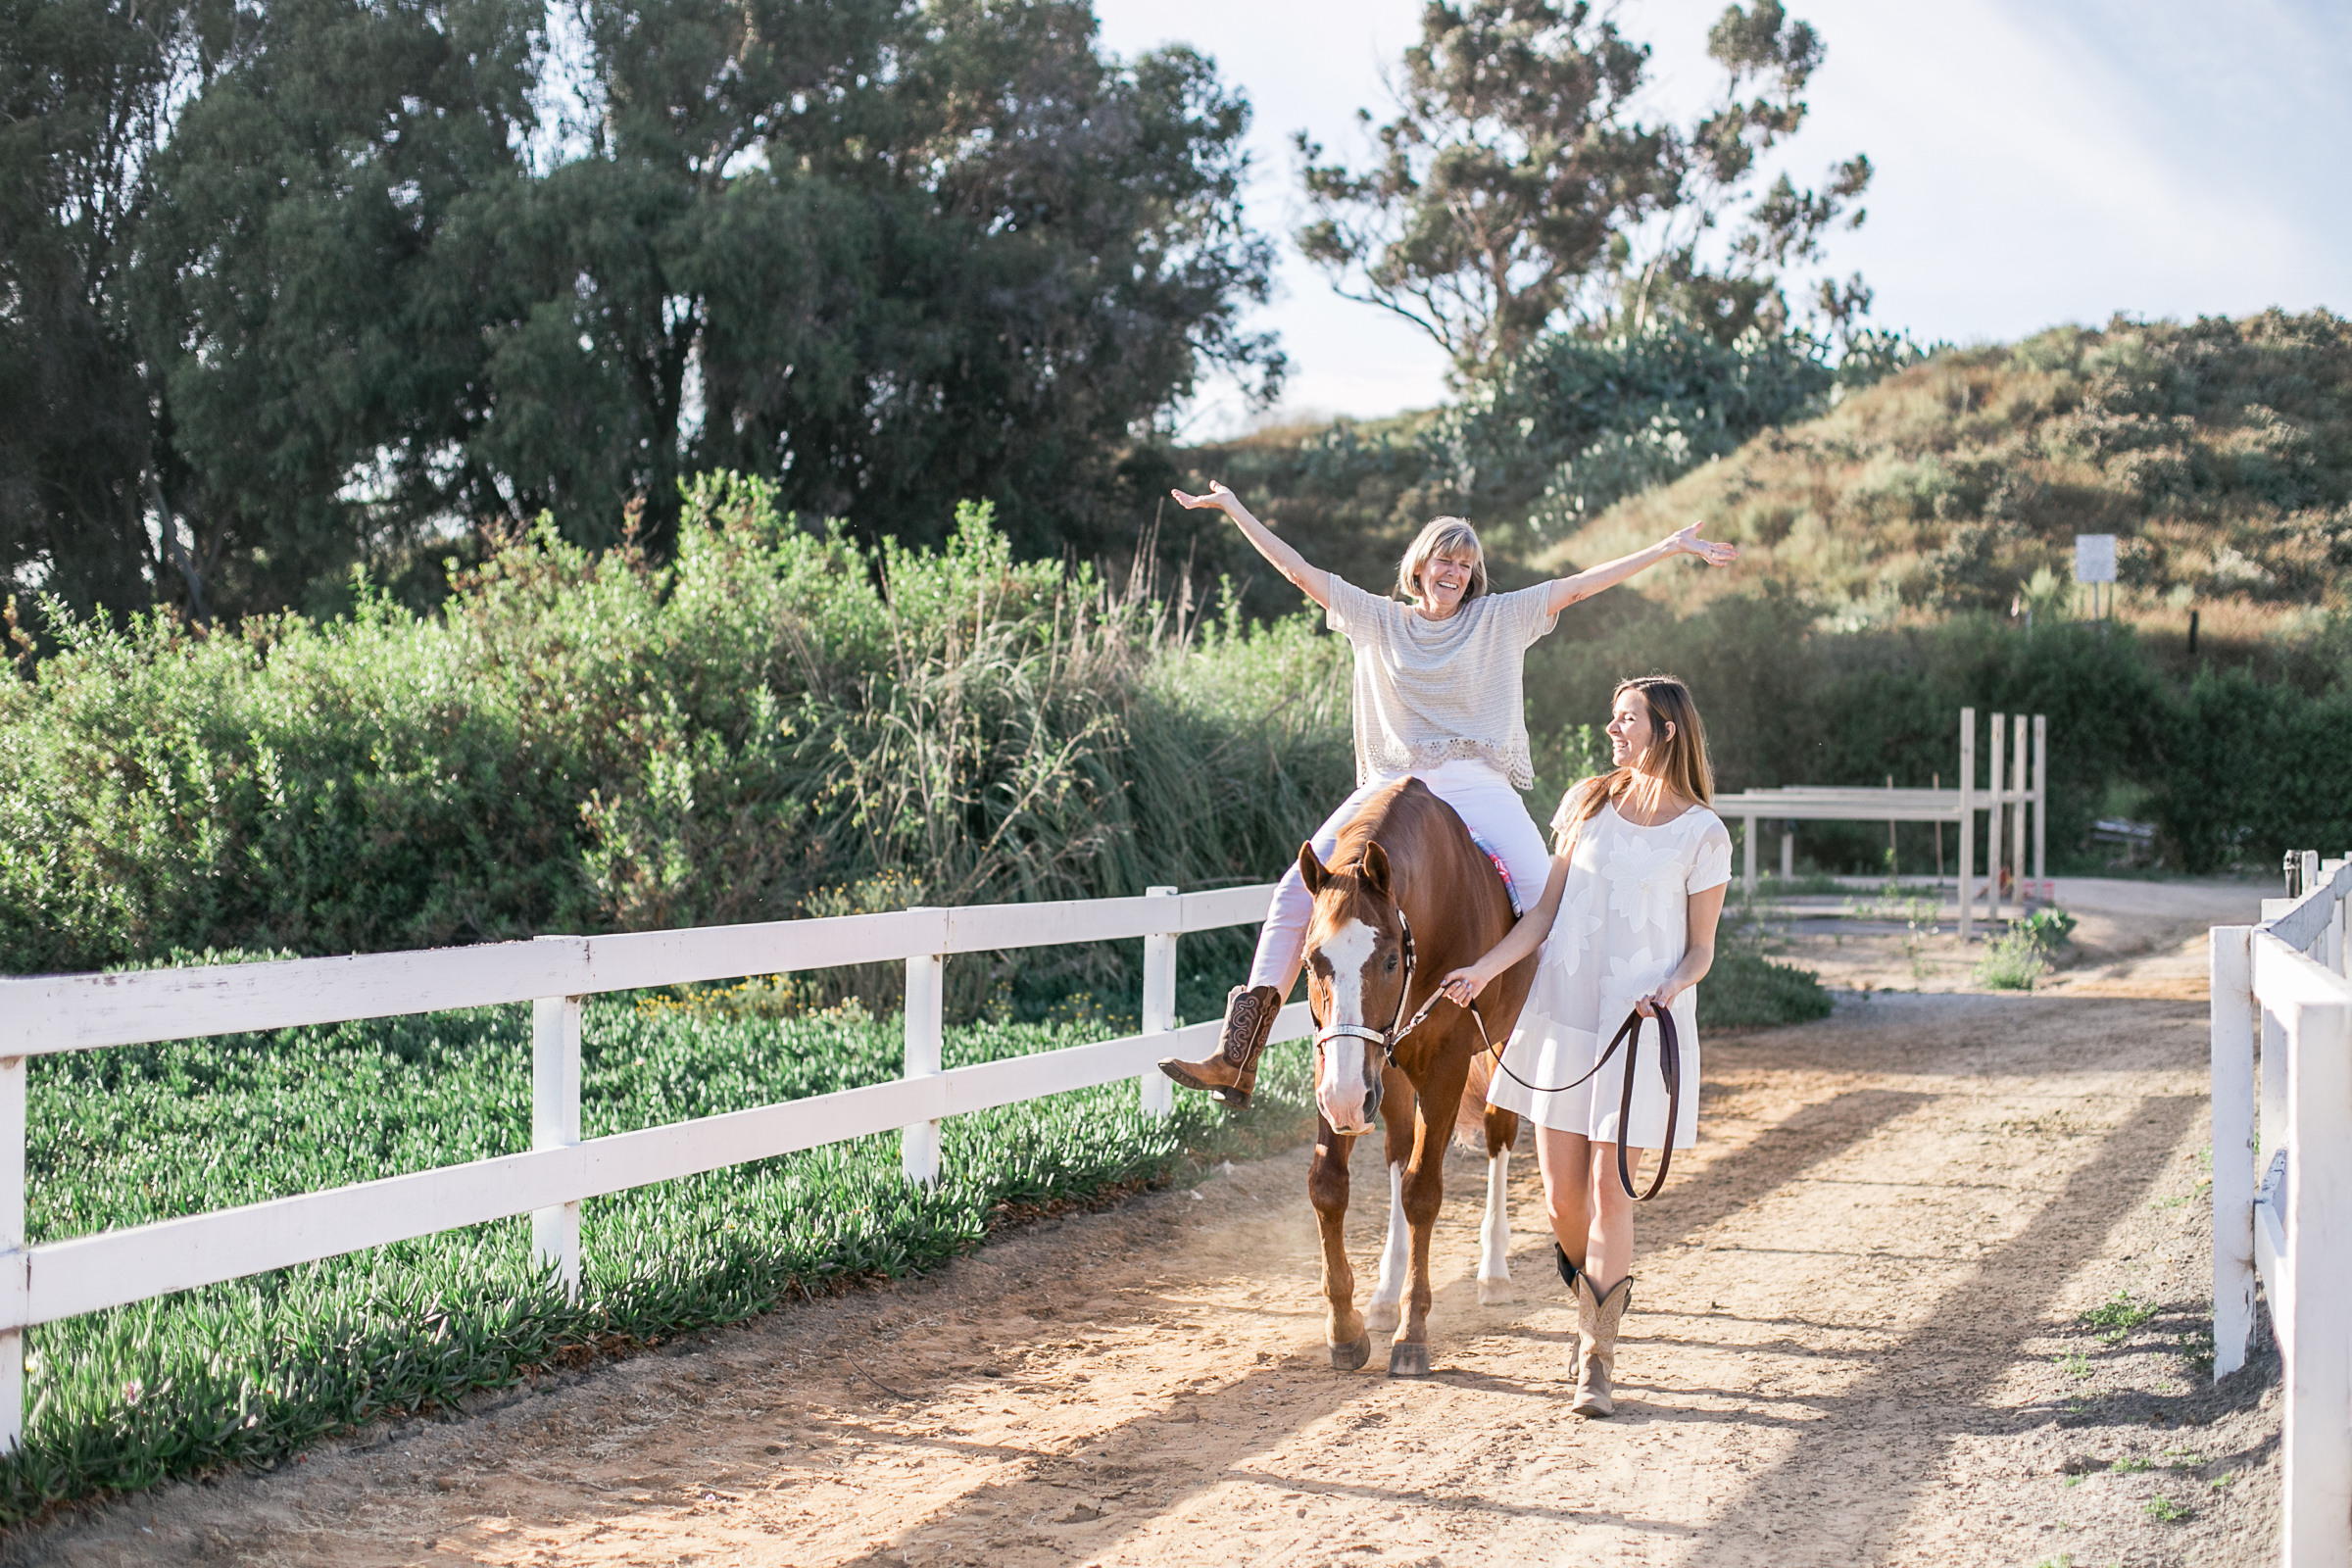 Mendola_Family _Session_Del_Mar_Equestrian_Ranch_2017-9.jpg